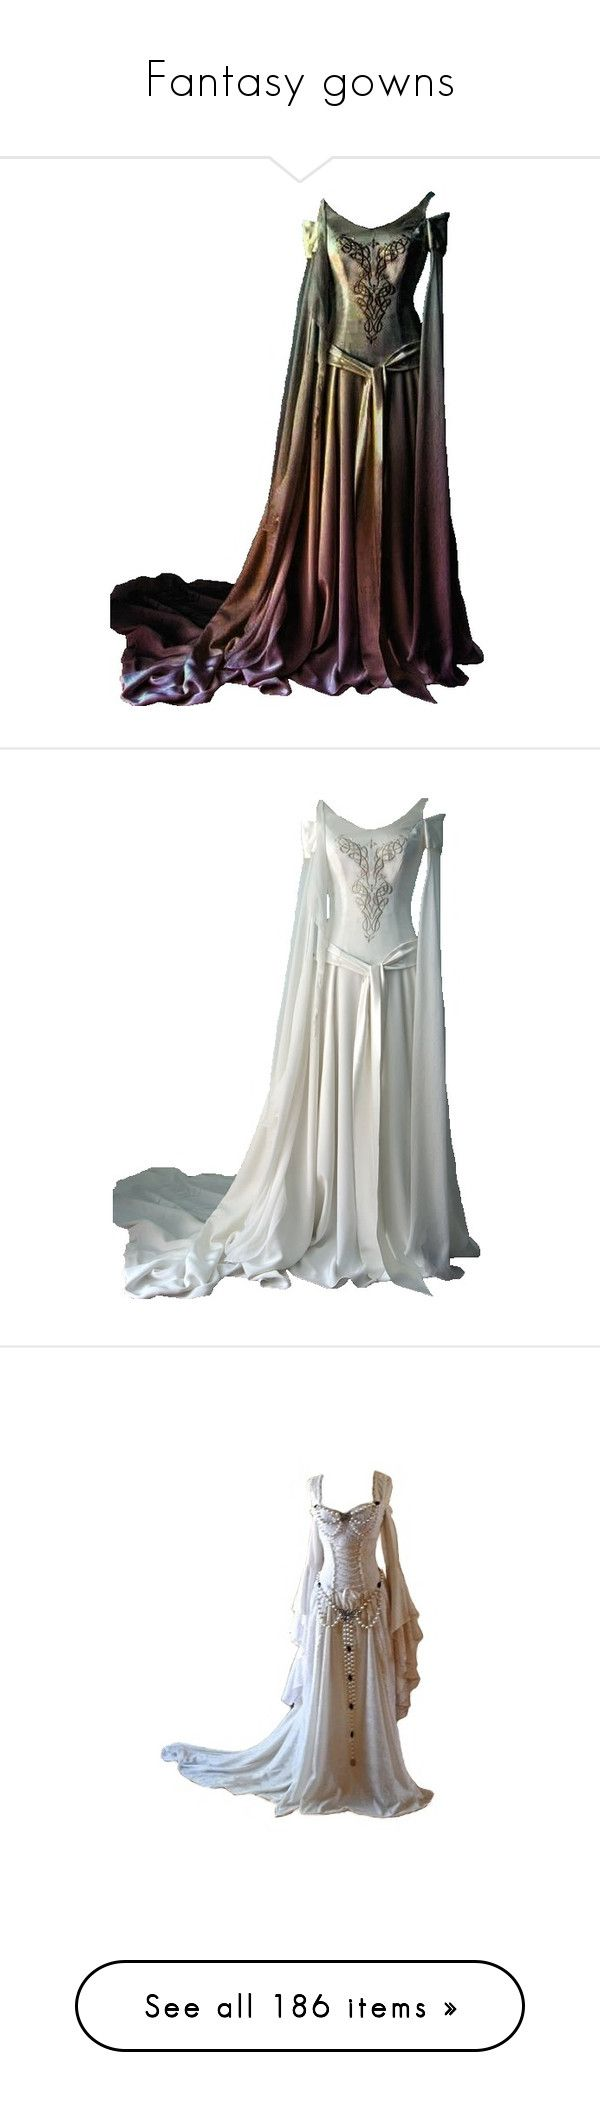 """Fantasy gowns"" by rebellious-ingenue ❤ liked on Polyvore featuring dresses, gowns, medieval, long dresses, costume, costumes, gown, historical, medieval dress and wedding dresses"